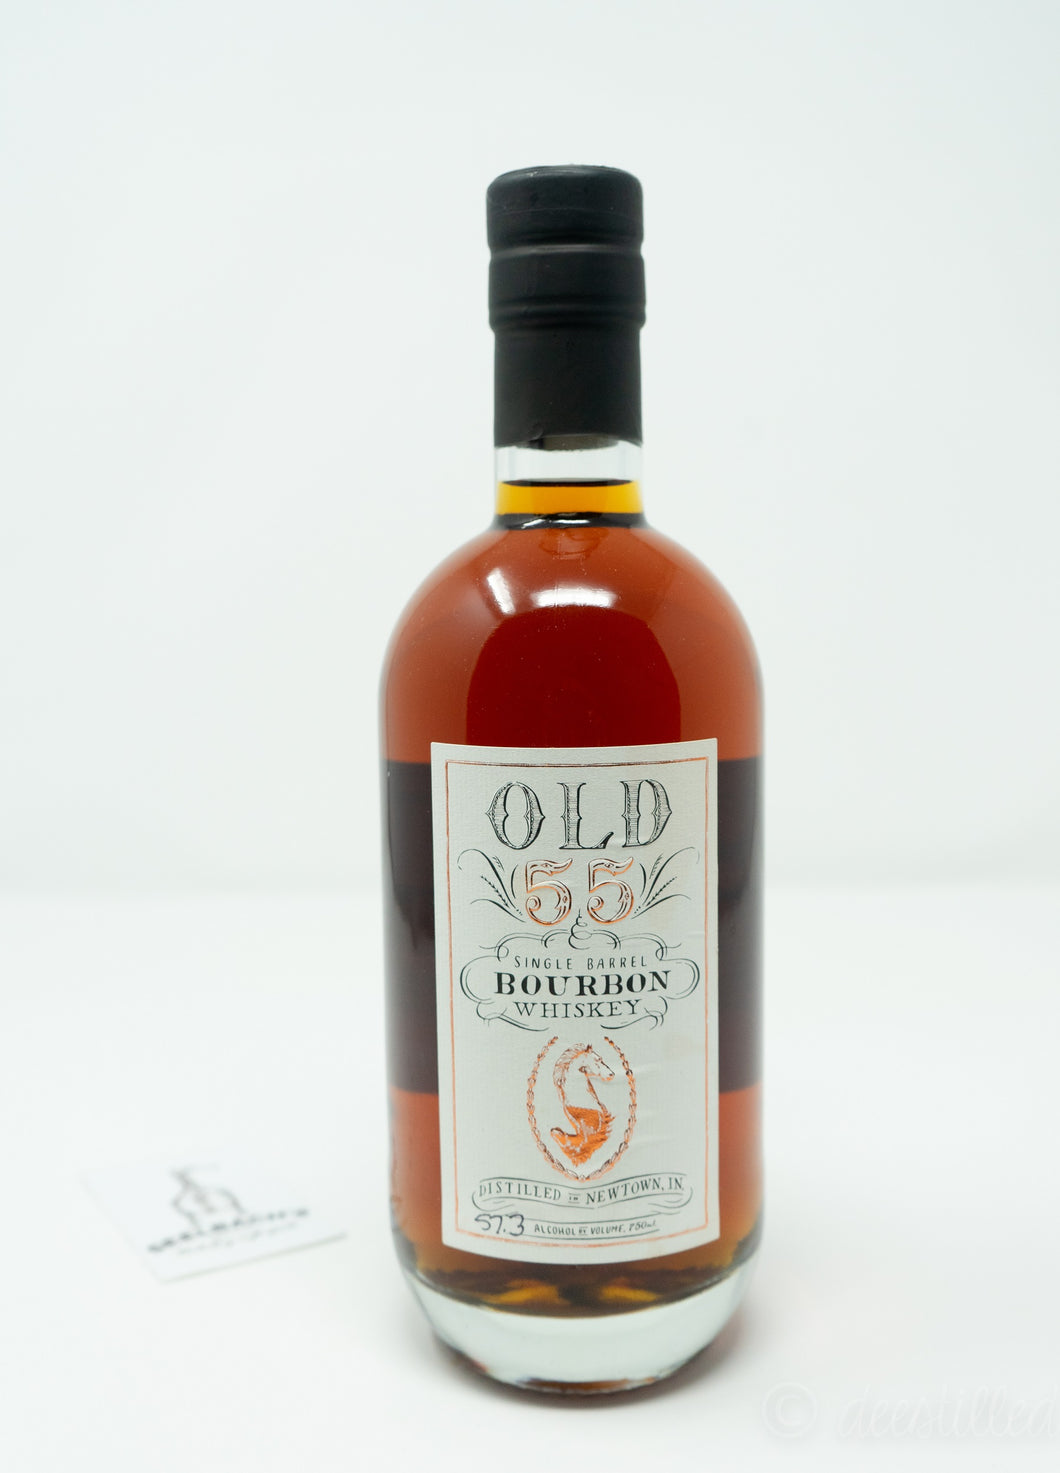 Old 55 Single Barrel Bourbon